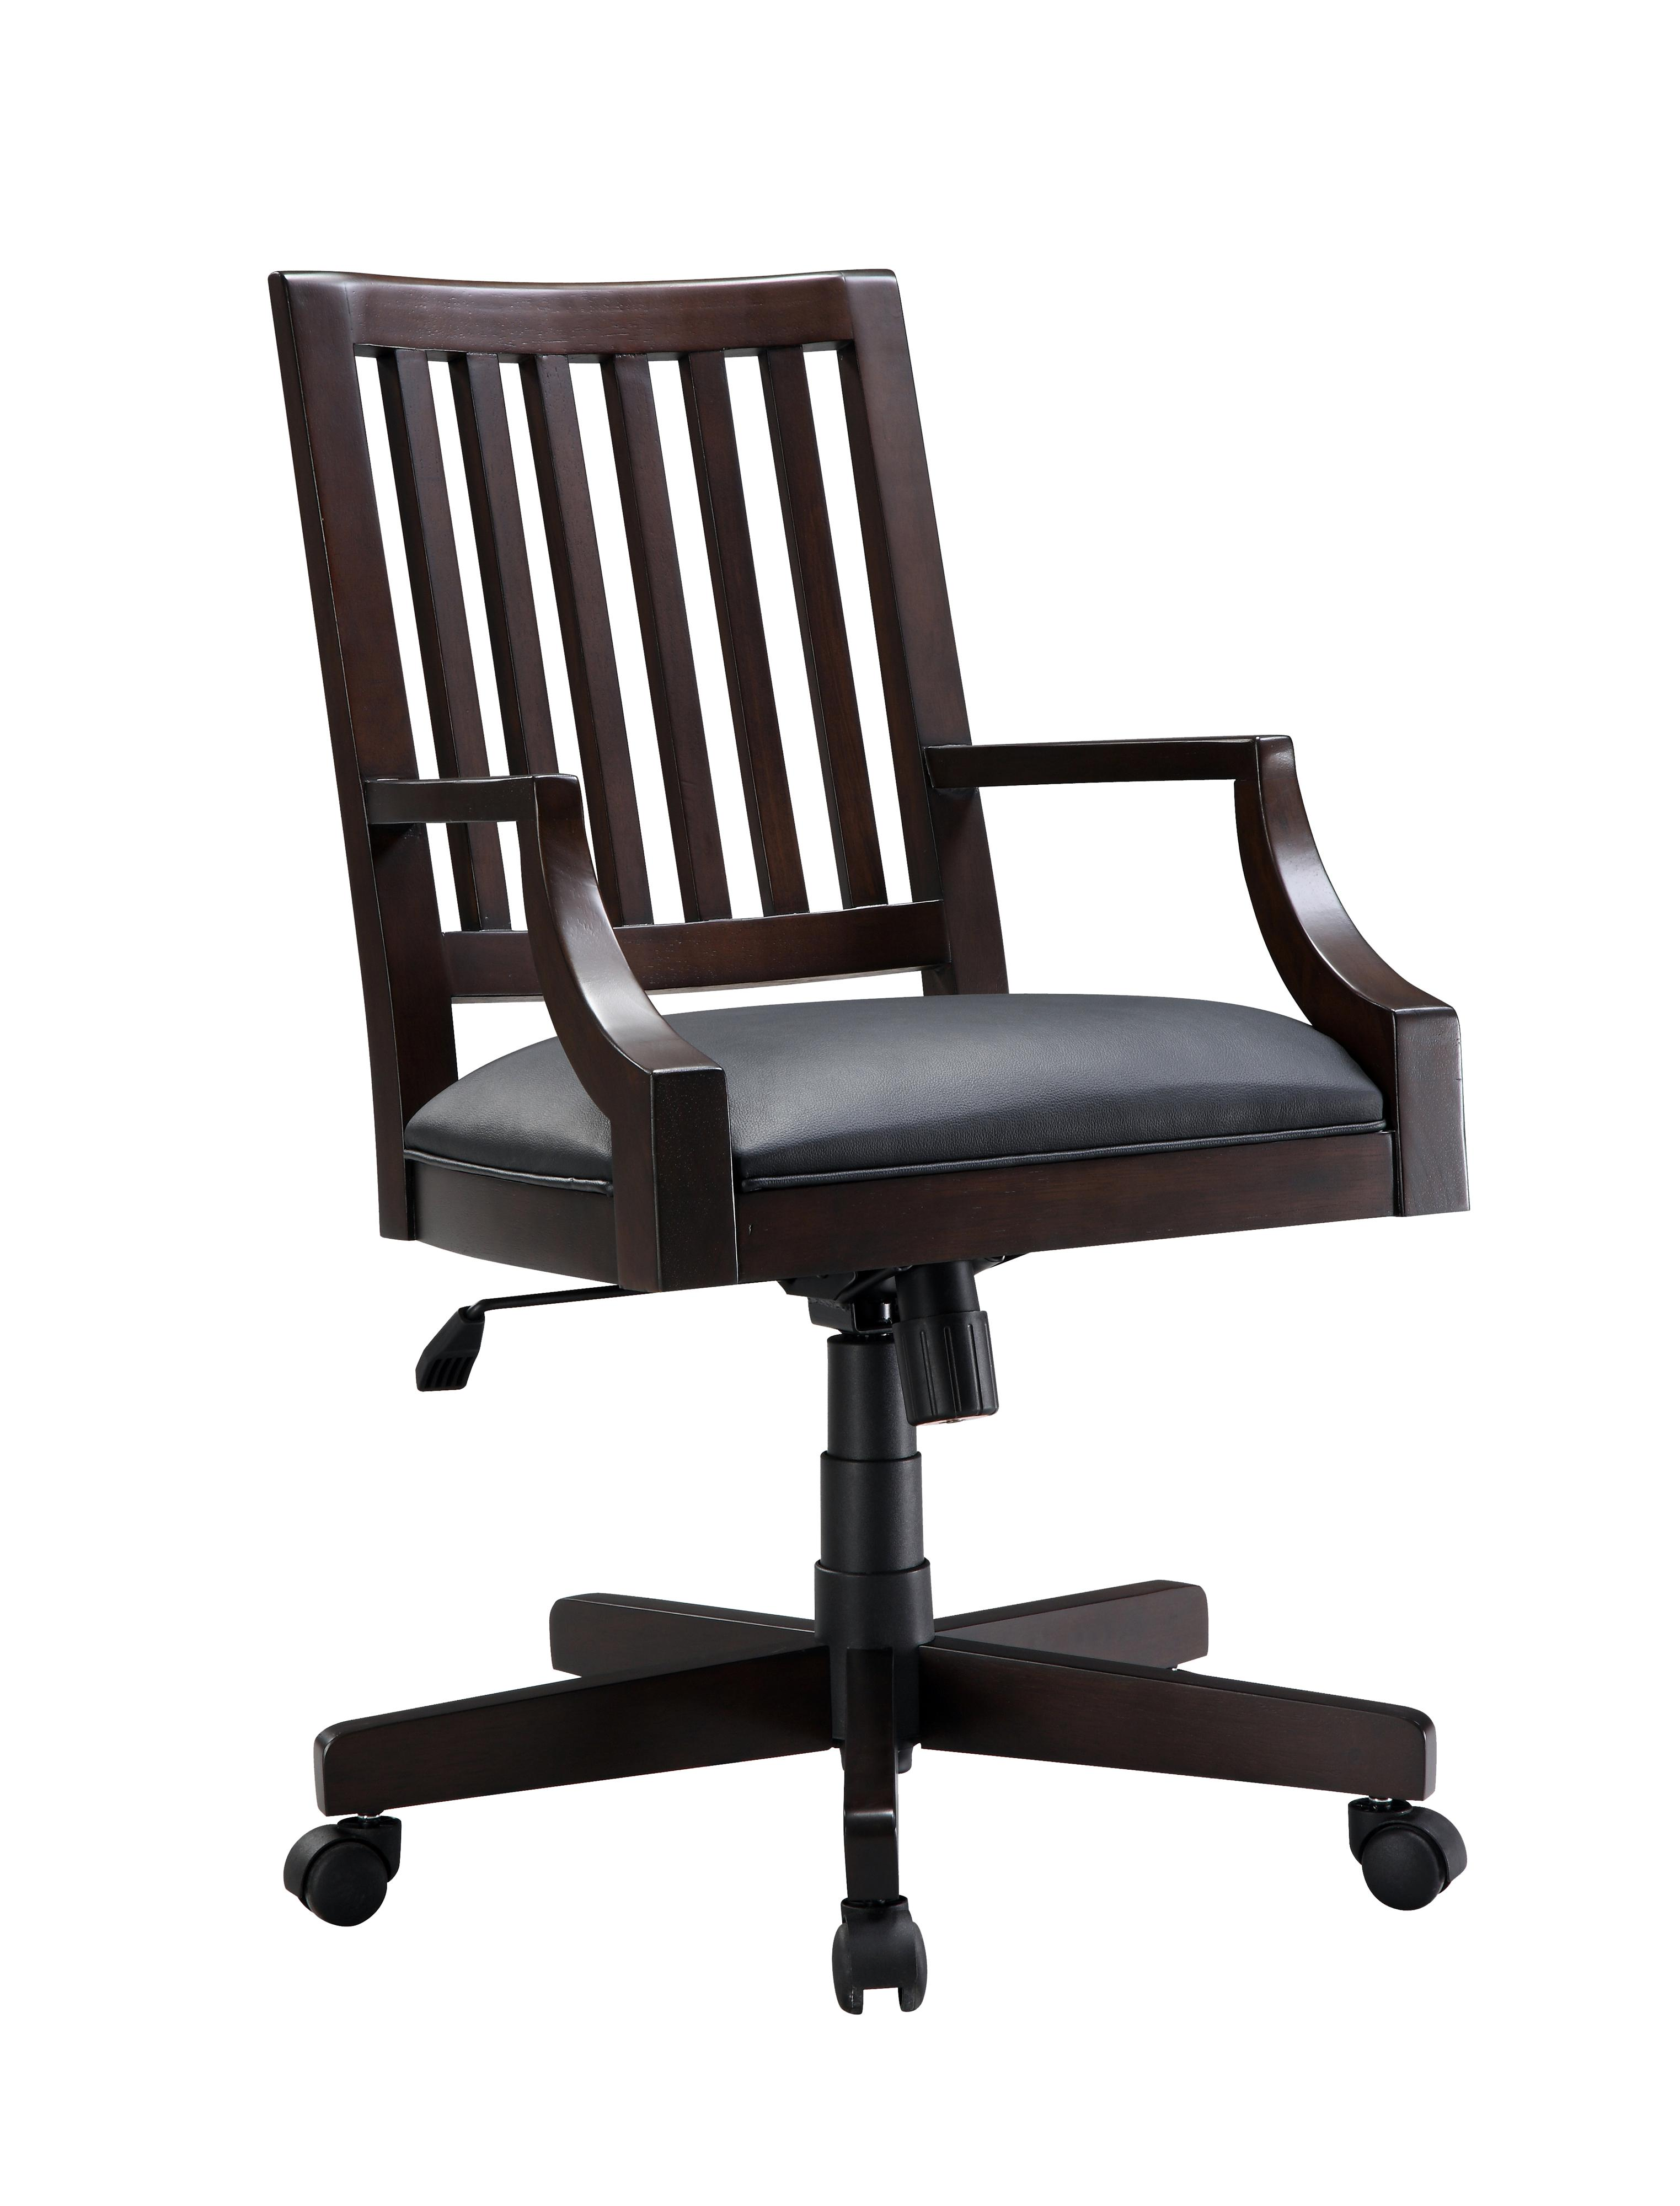 Office Chairs Flex Swivel Tilt Office Desk Chair With Upholstered Seat By  Flexsteel Wynwood Collection